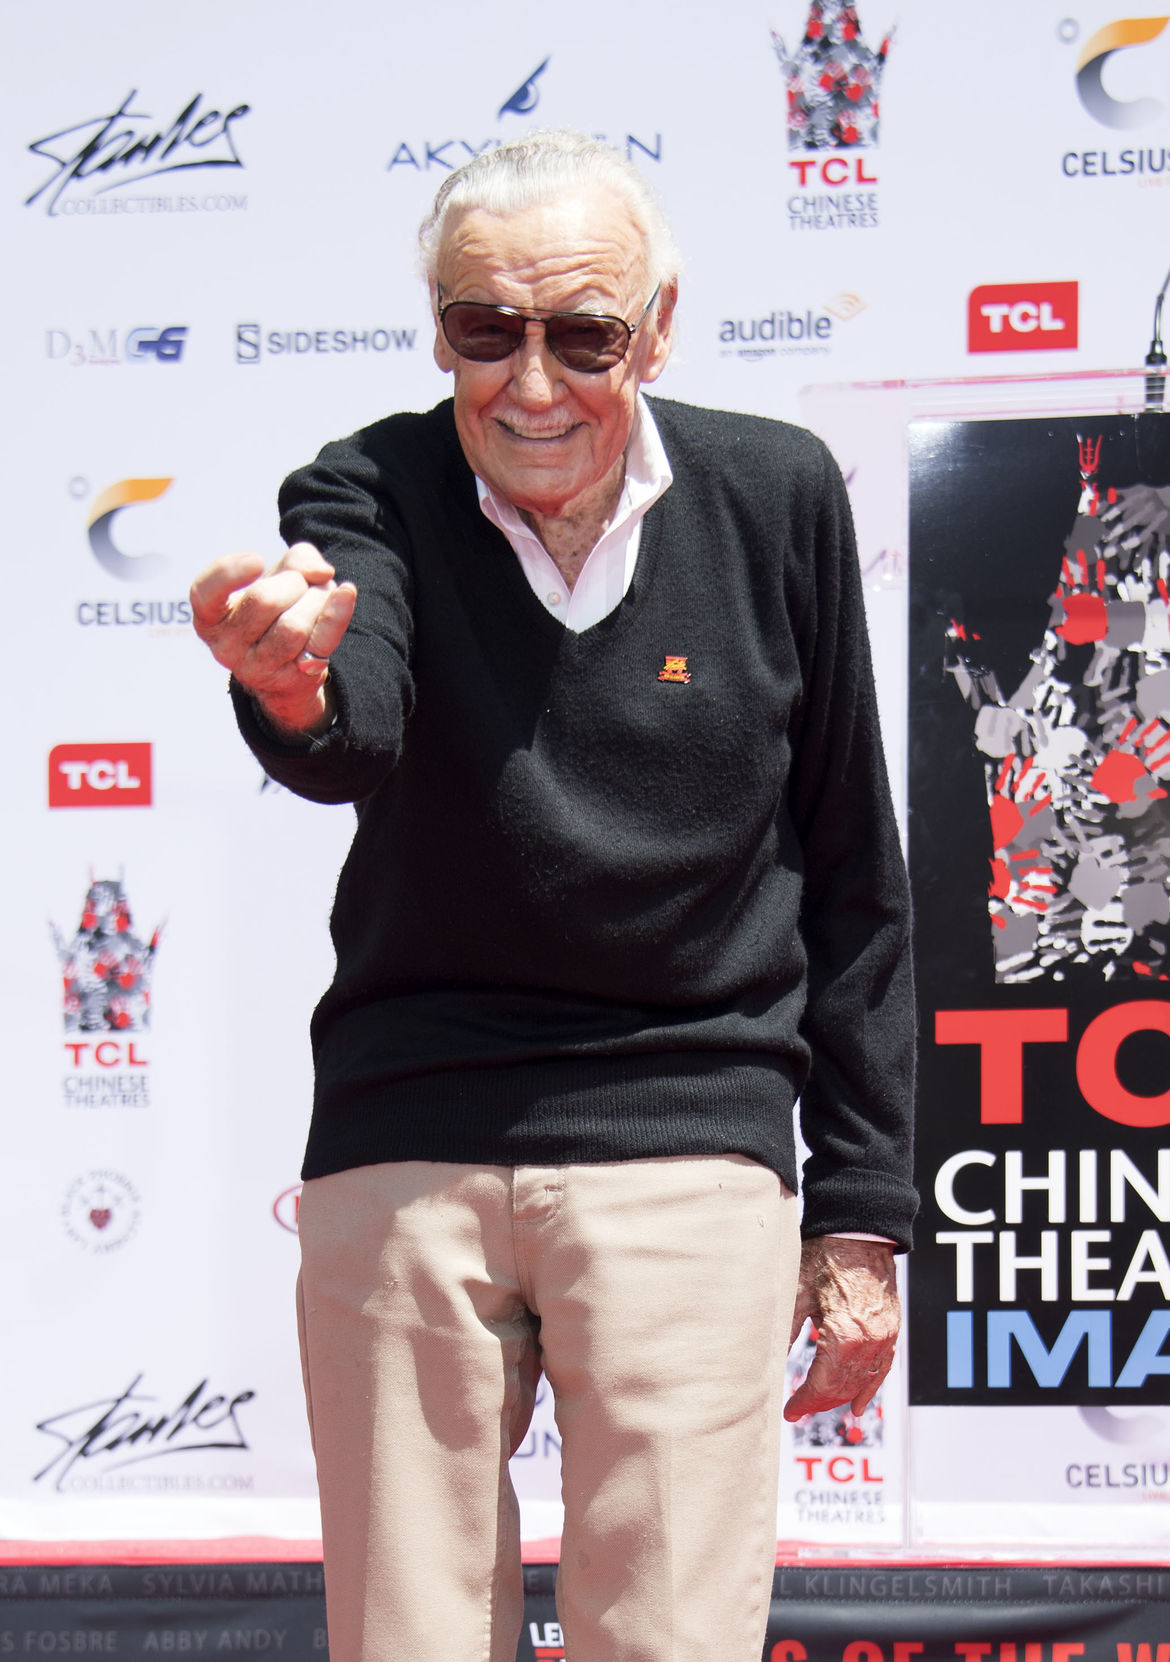 Stan Lee at Grauman's TLC Chinese theatre